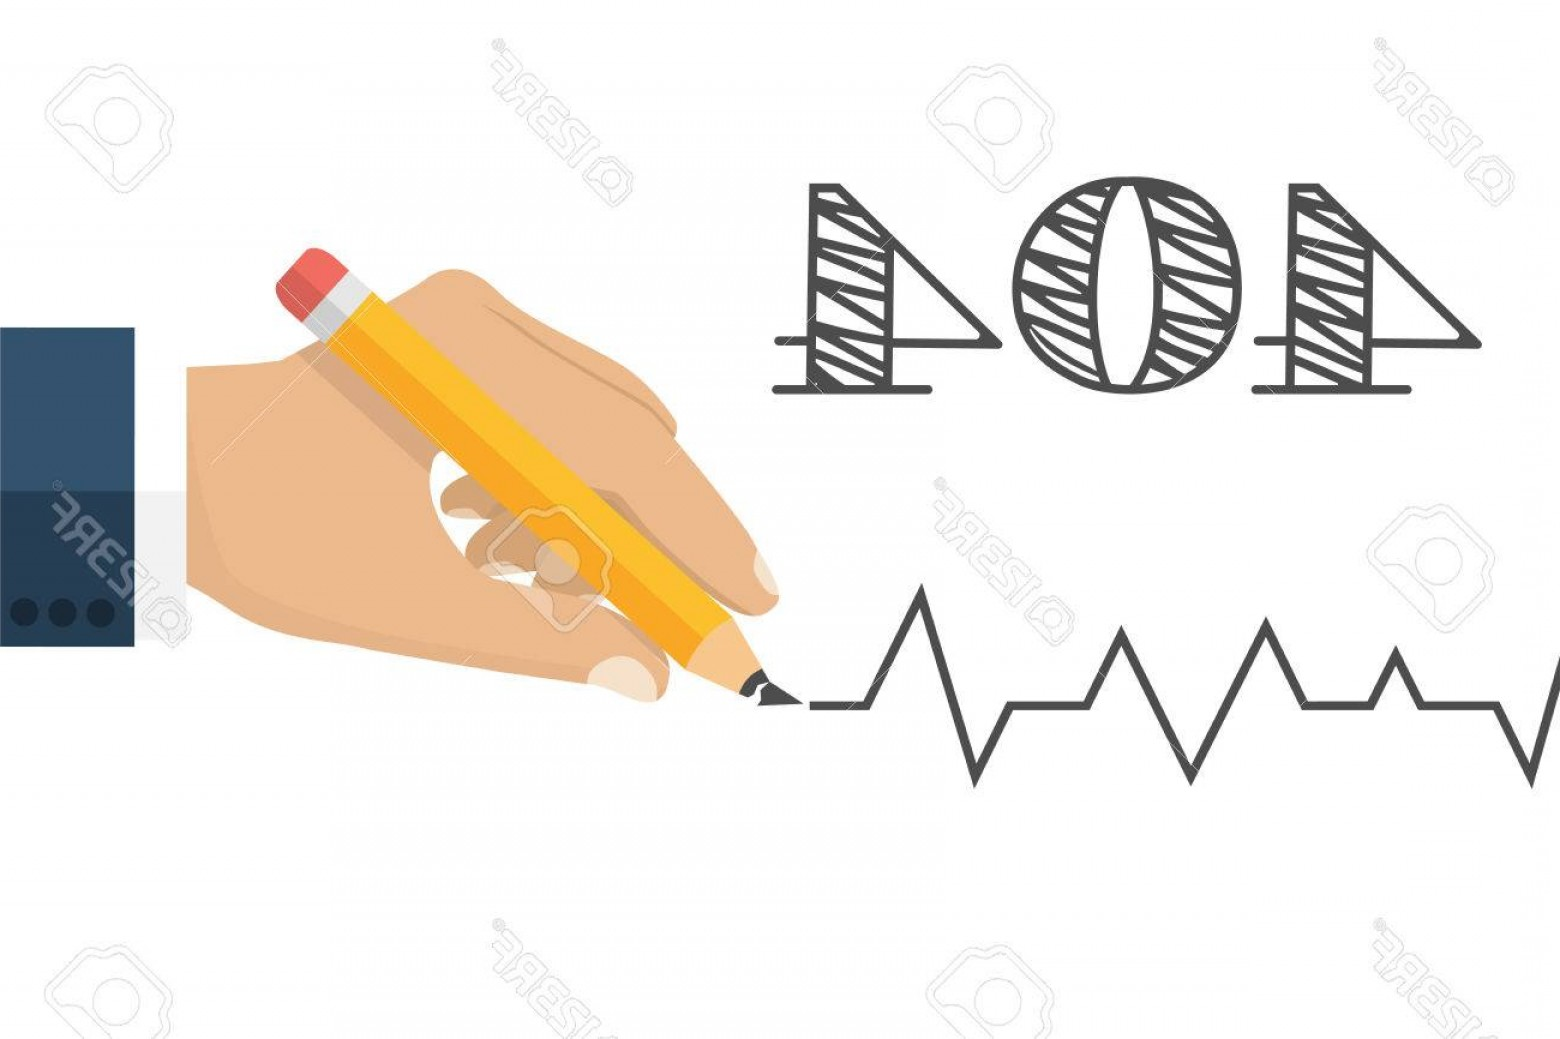 Broken Pencil Vector: Photostock Vector Error Page Not Found Connection Error Broken Pencil In A Man S Hand As A Symbol Of Failure Vecto